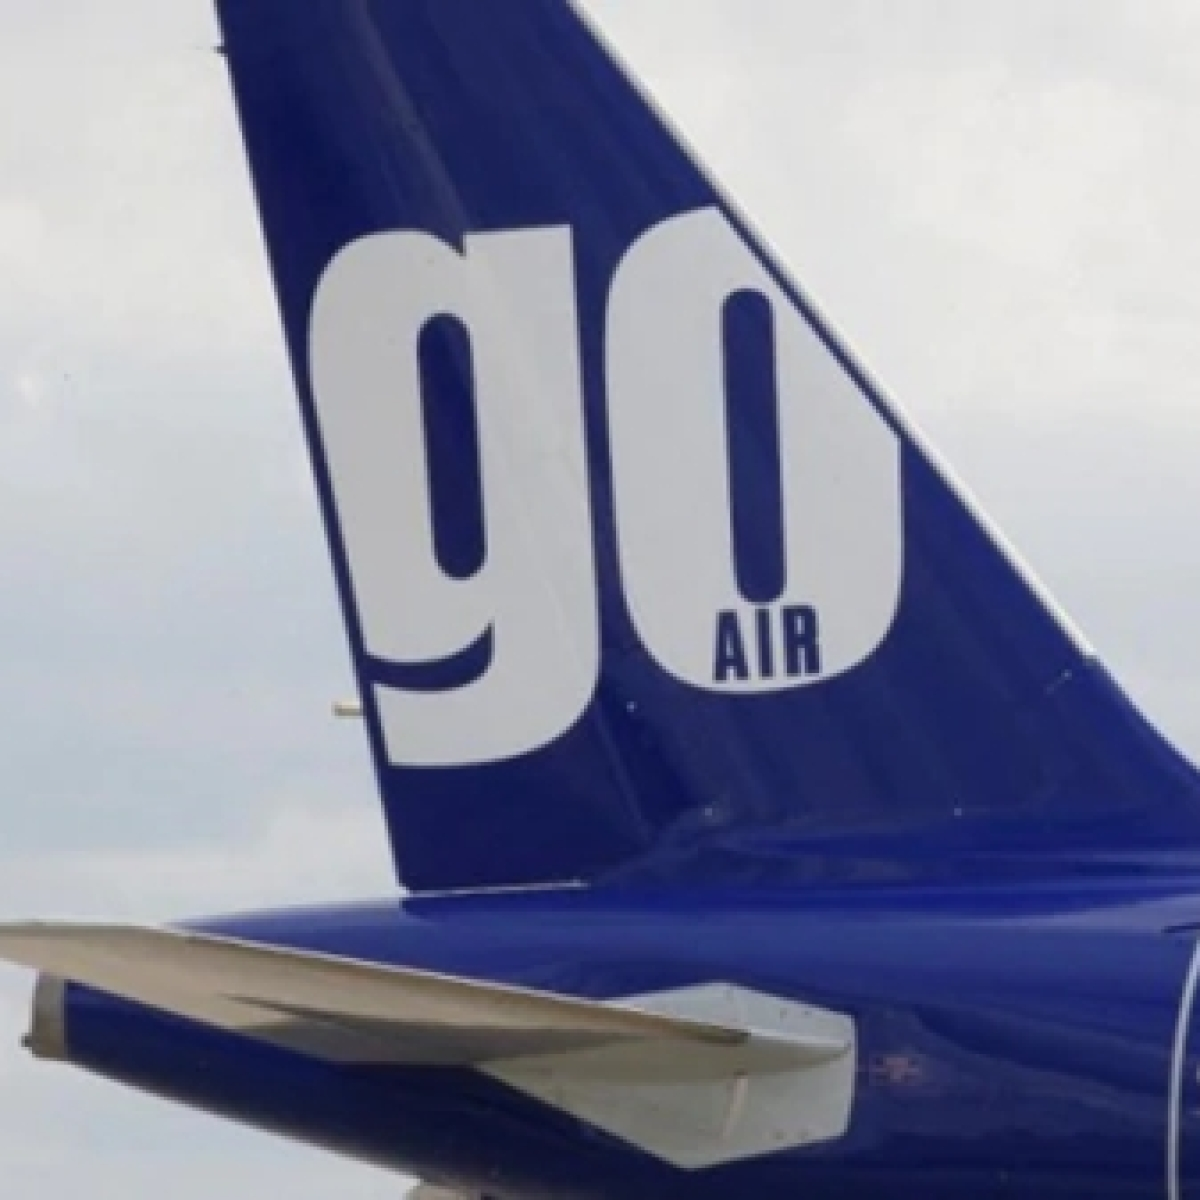 GoAir files DRHP for Rs 3,600-cr a day after rebranding itself